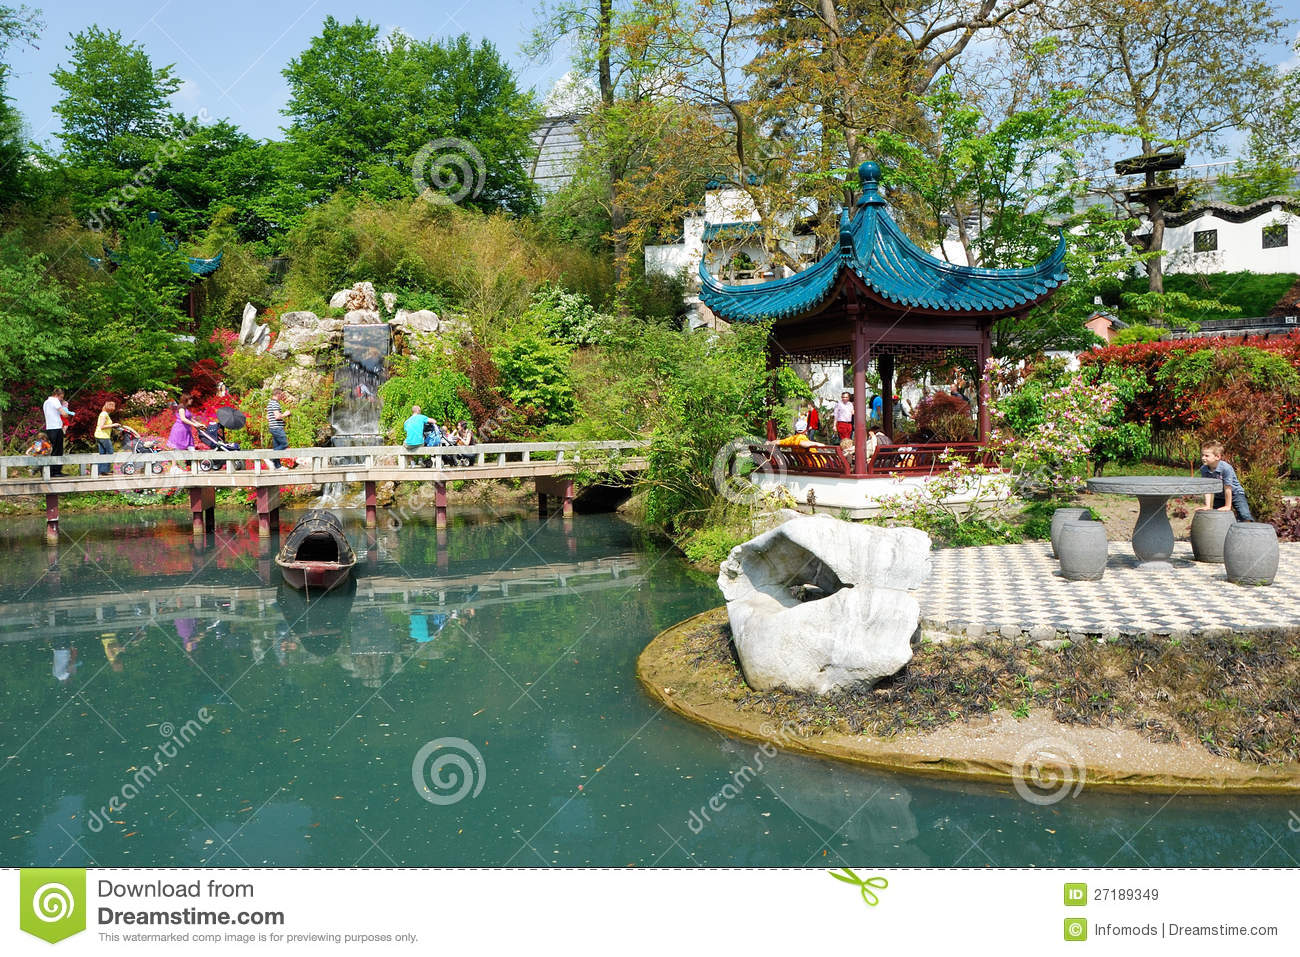 Jardin chinois image stock ditorial image 27189349 for Jardin chinois